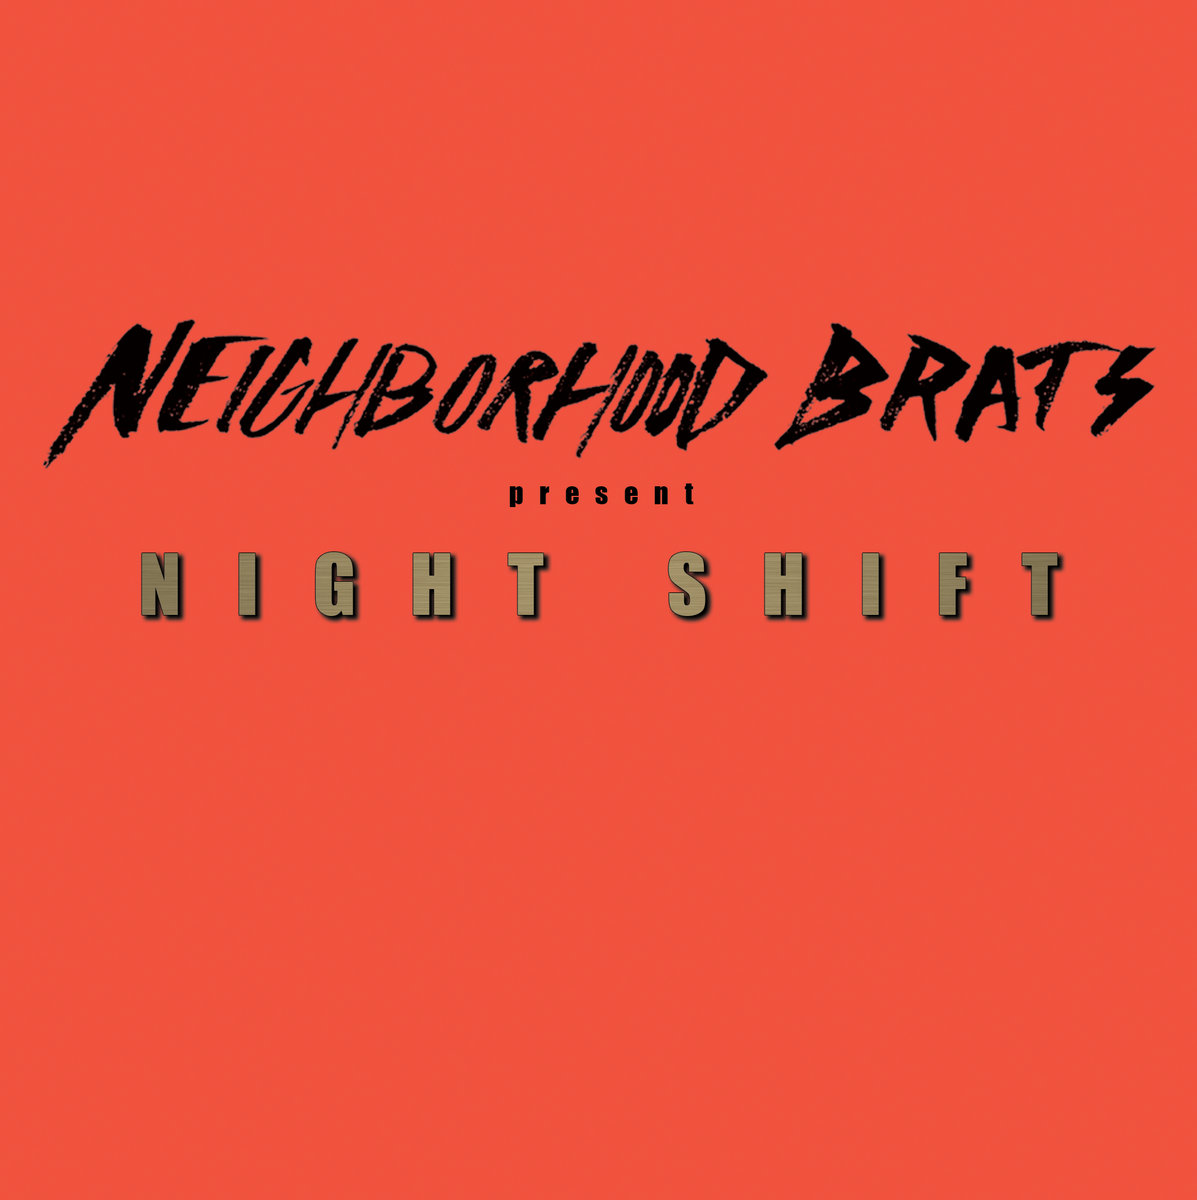 Night Shift | Neighborhood Brats